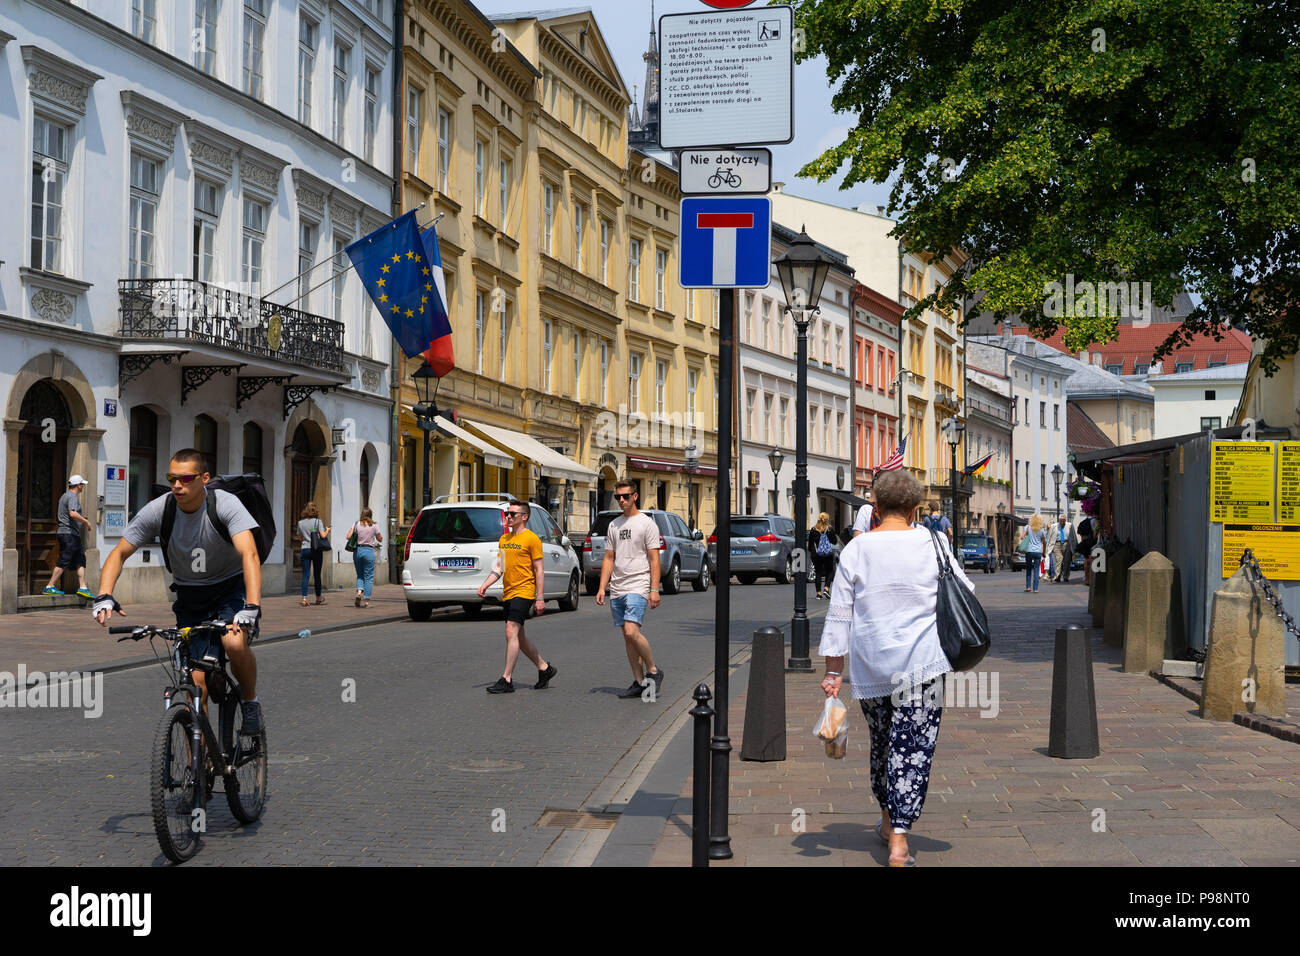 Cyclist on the streets of Krakow, Poland, Europe. - Stock Image